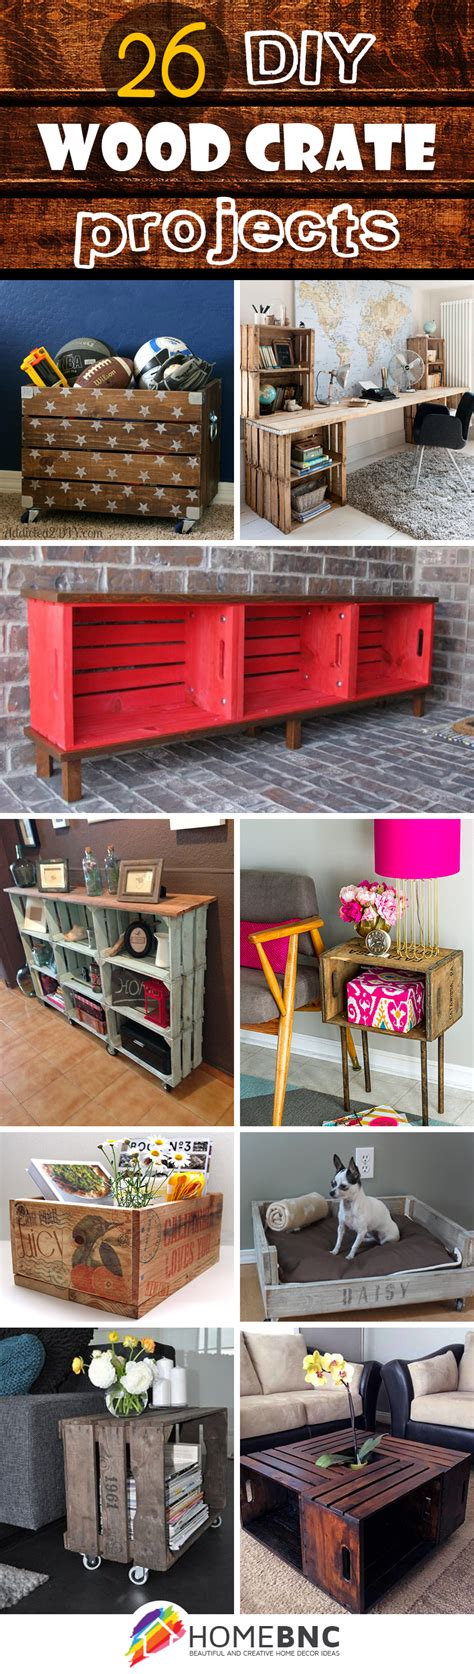 26 Diy Wood Crate Projects Images